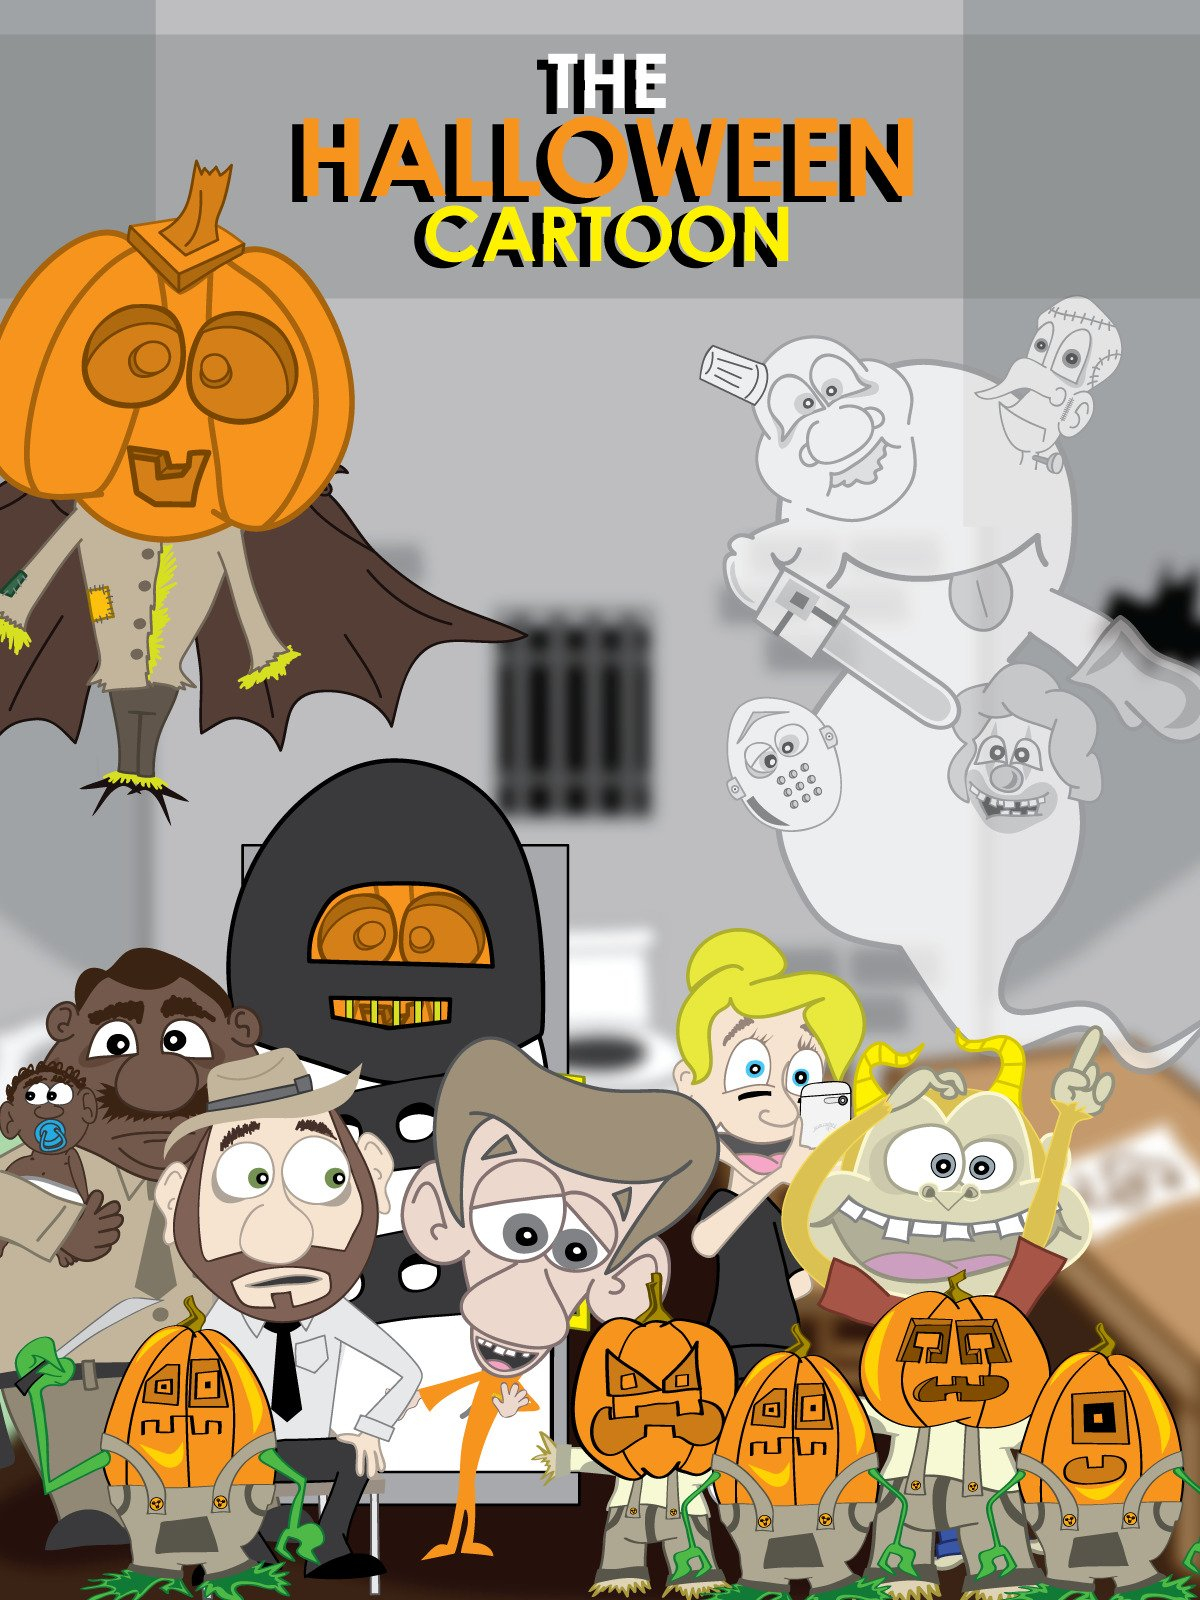 The Halloween Cartoon